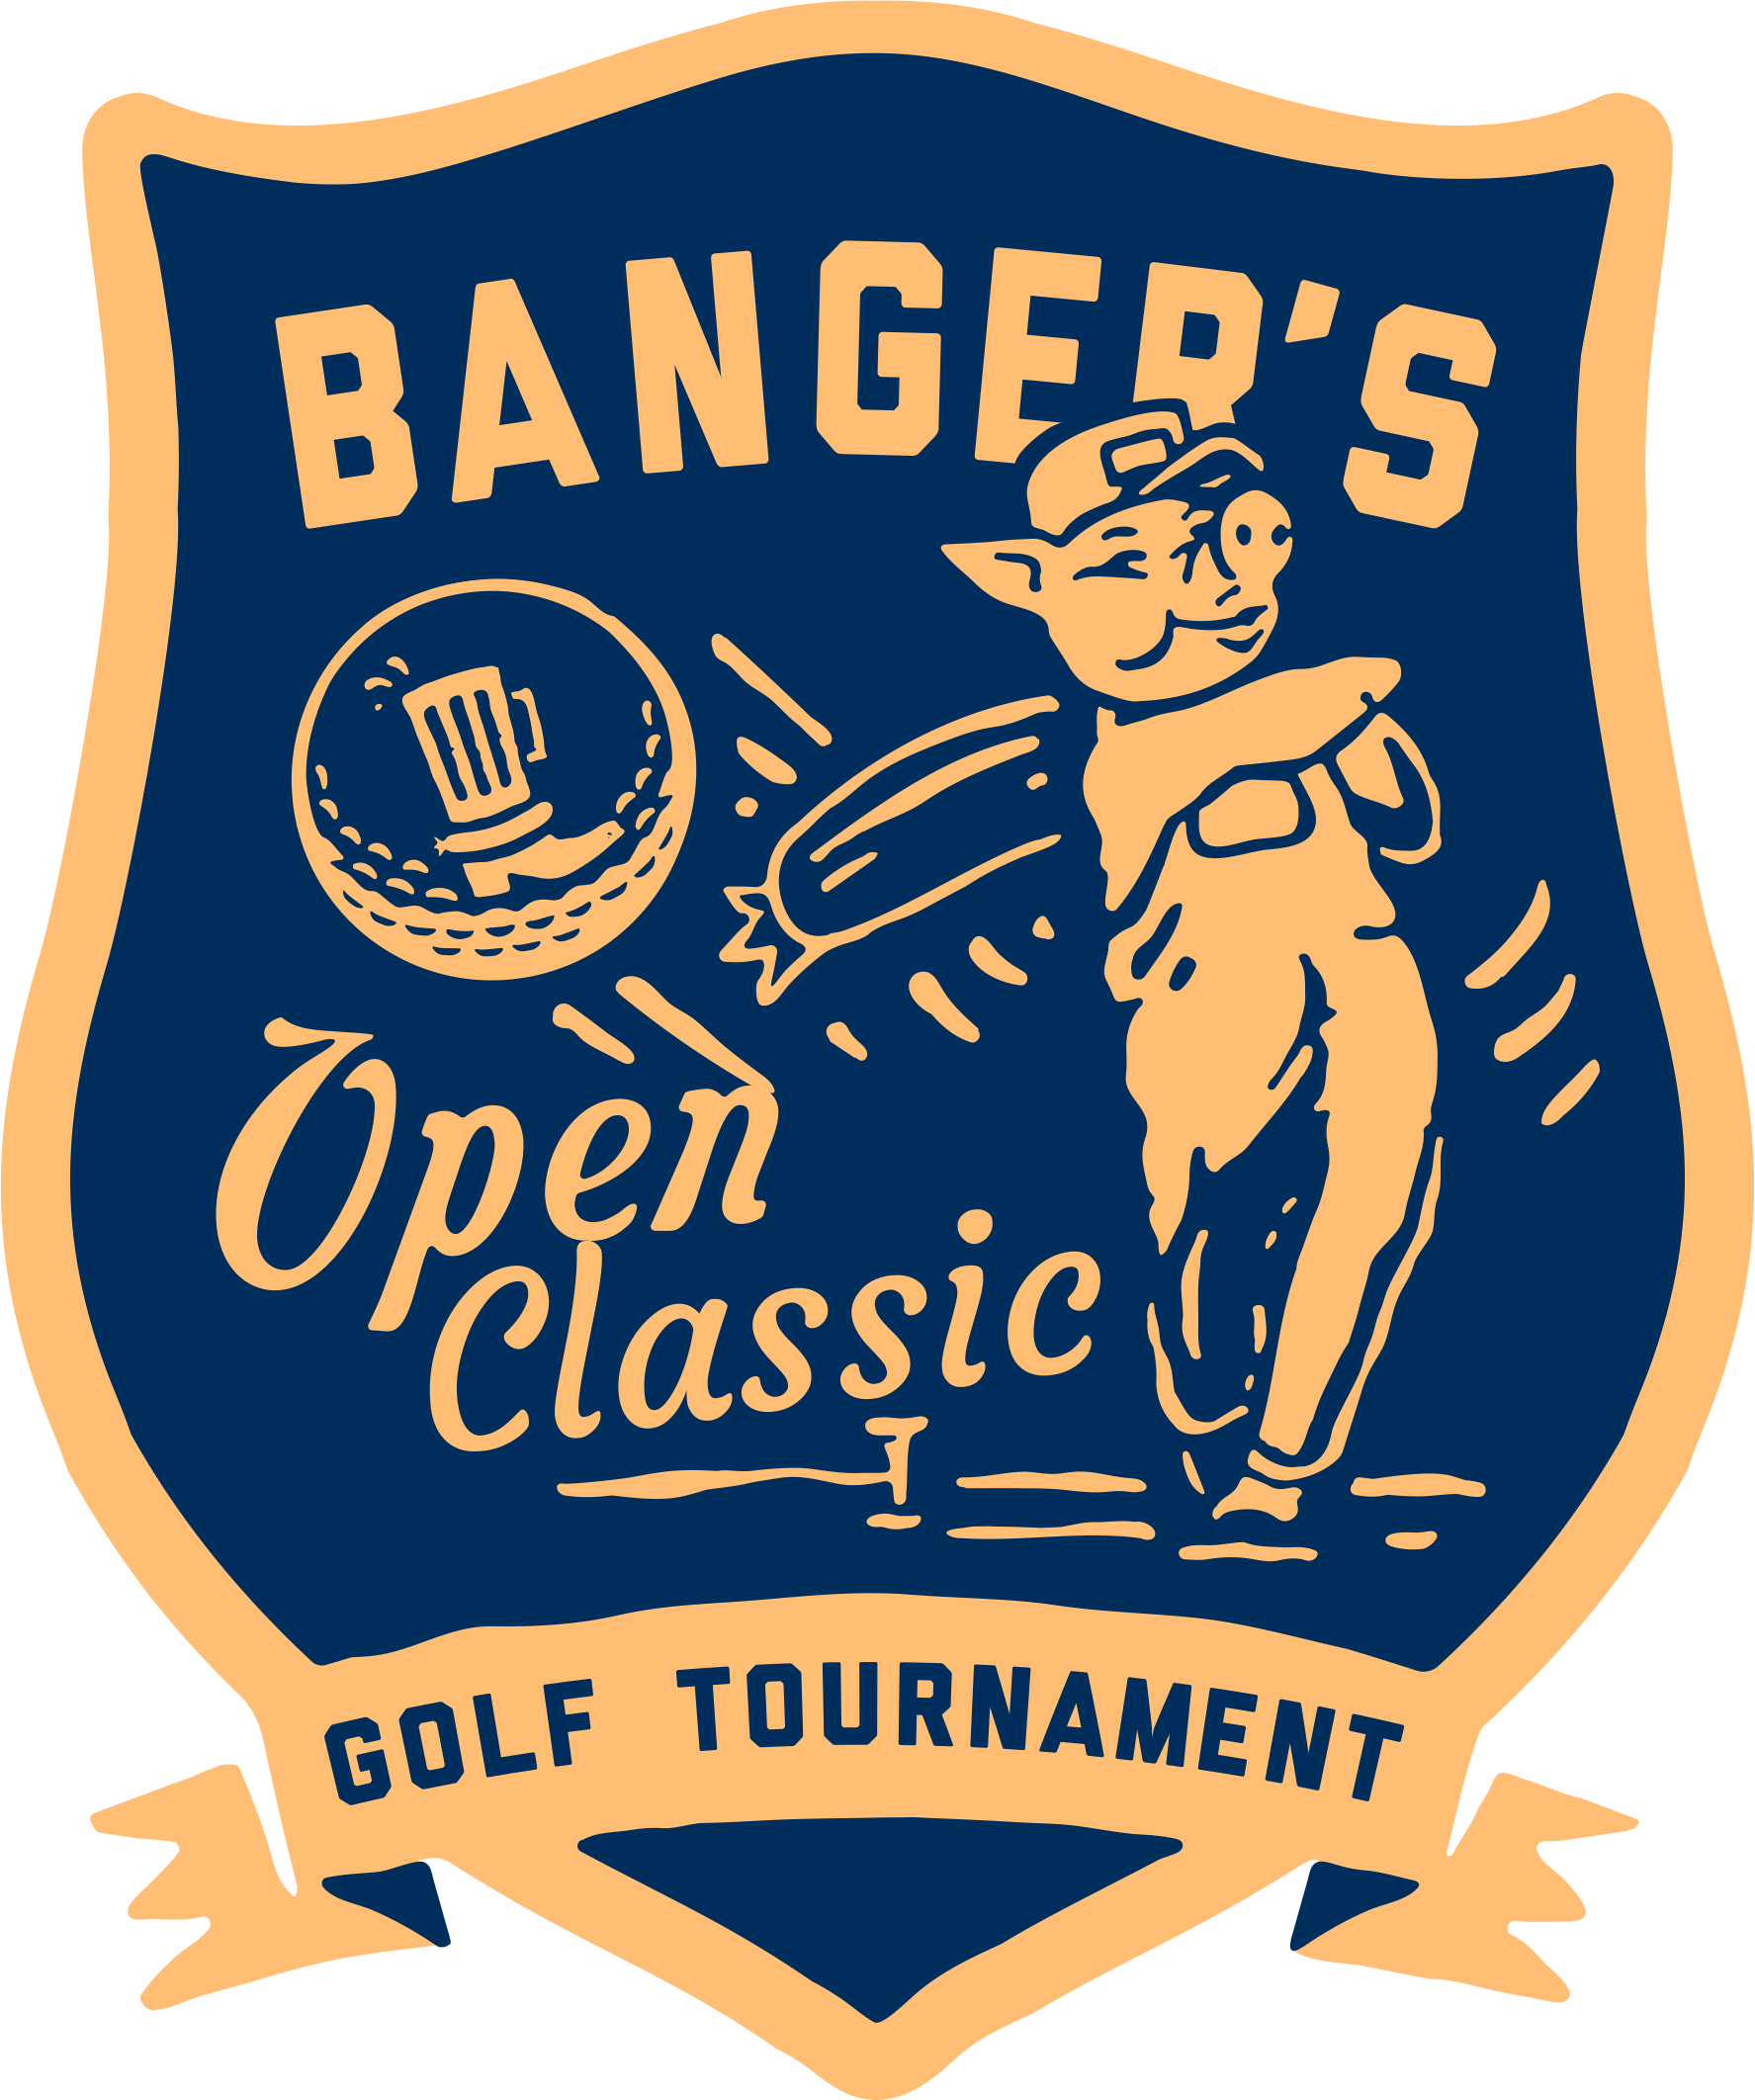 Bangers Open Classic.png